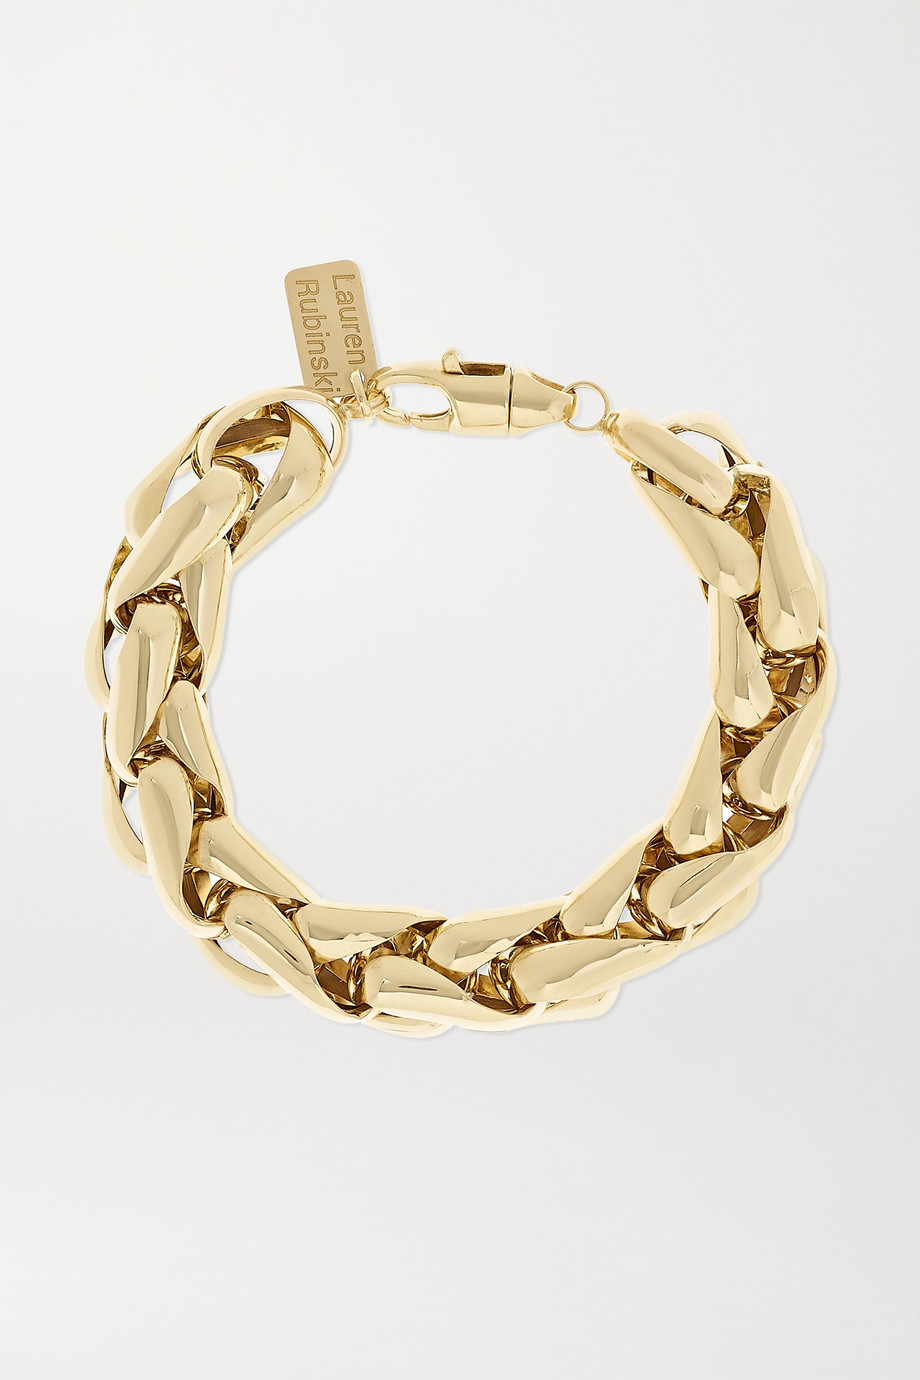 Lauren Rubinski Bracelet en or 14 carats Medium